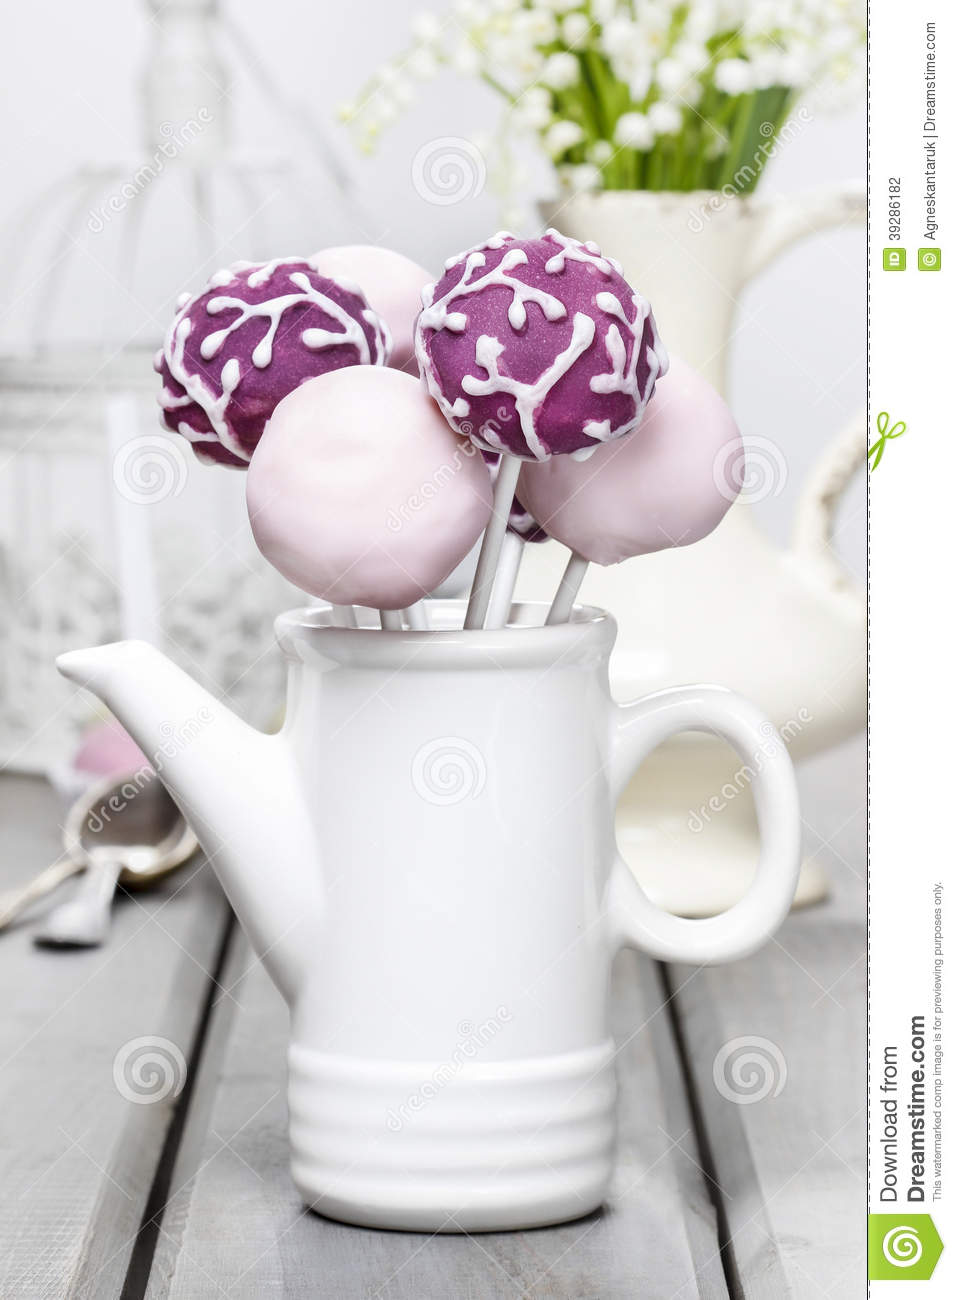 Pastel Cake Pops On Rustic Grey Wooden Table Stock Photo Image Of